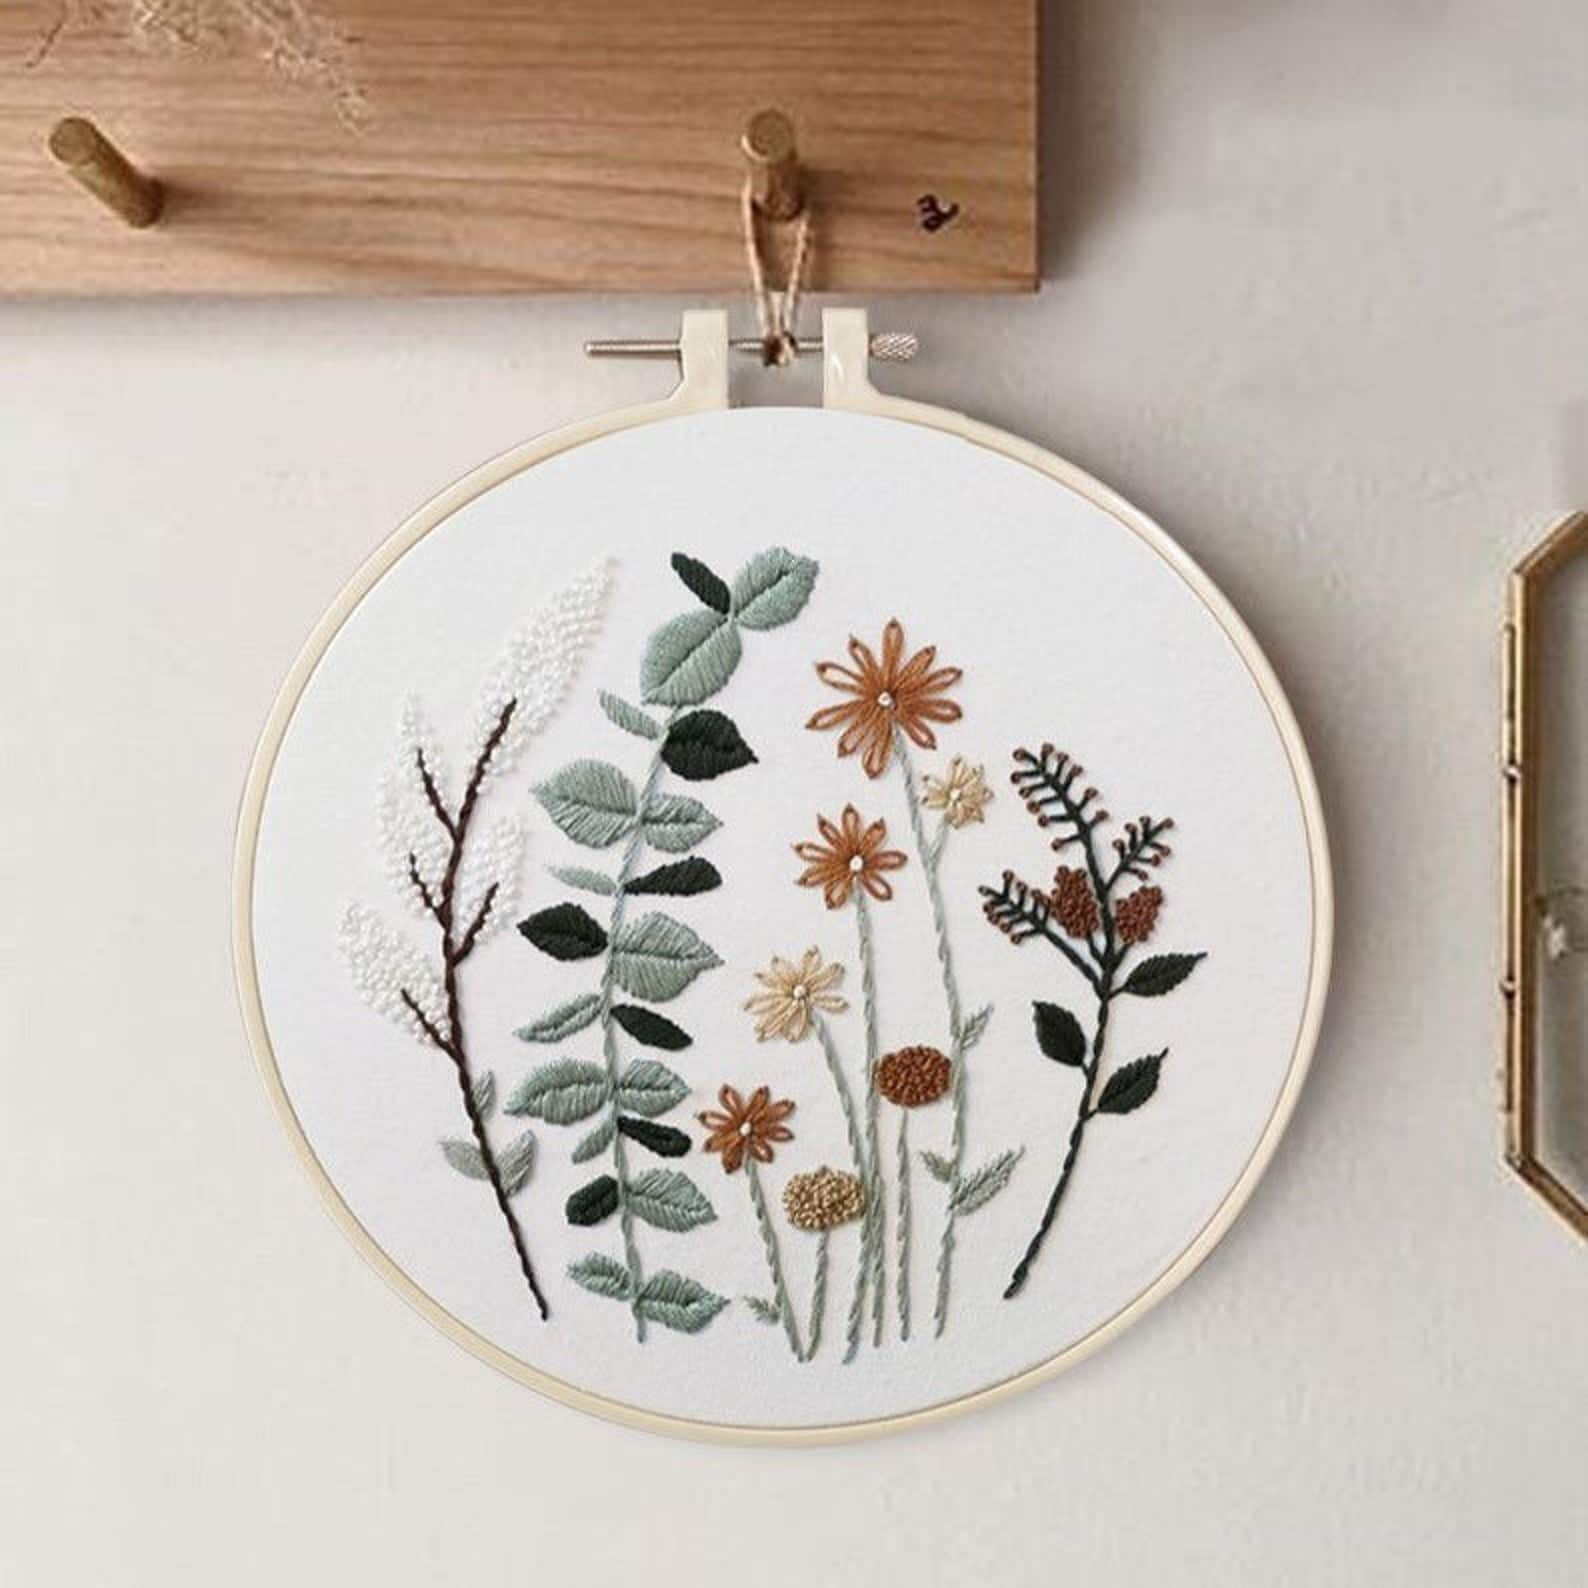 Beginner Embroidery Kit by The Cherry Blossom